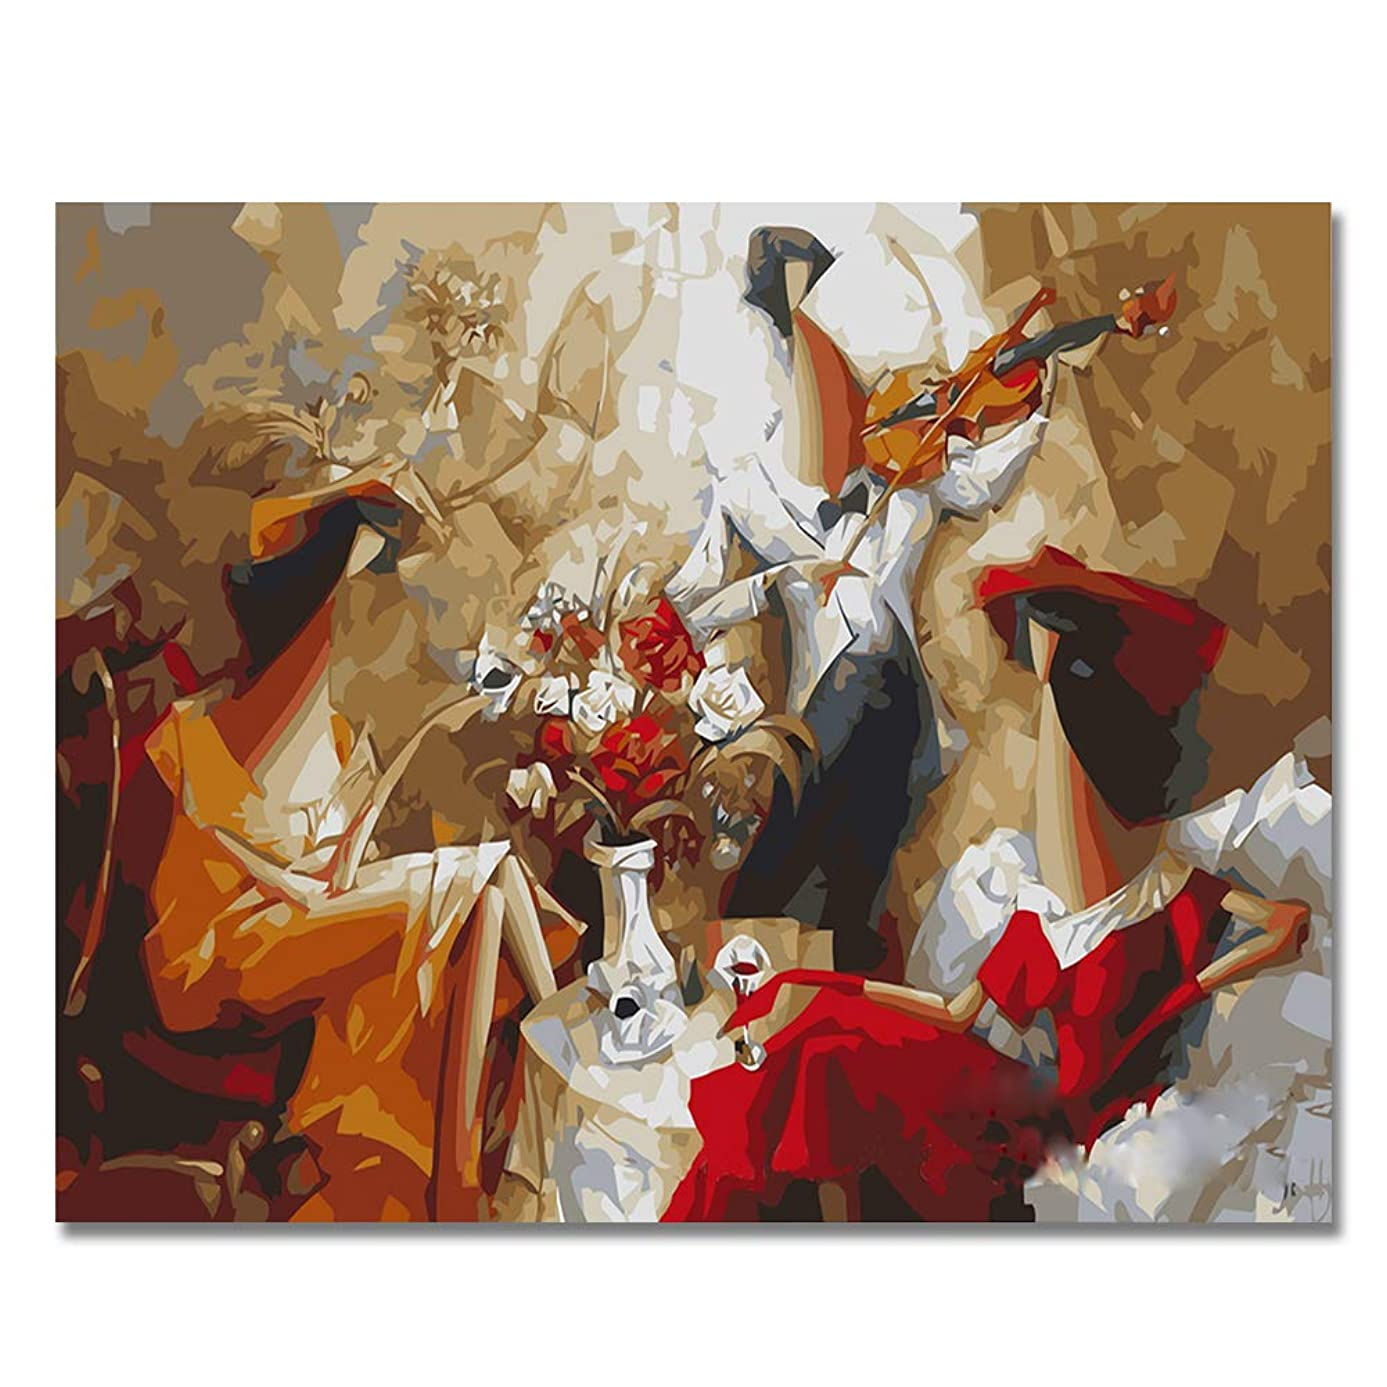 LIUDAO Paint By Numbers Kits, Oil Painting on Canvas - Violin Women - 16x20 Inches Without Frame Oil Painting